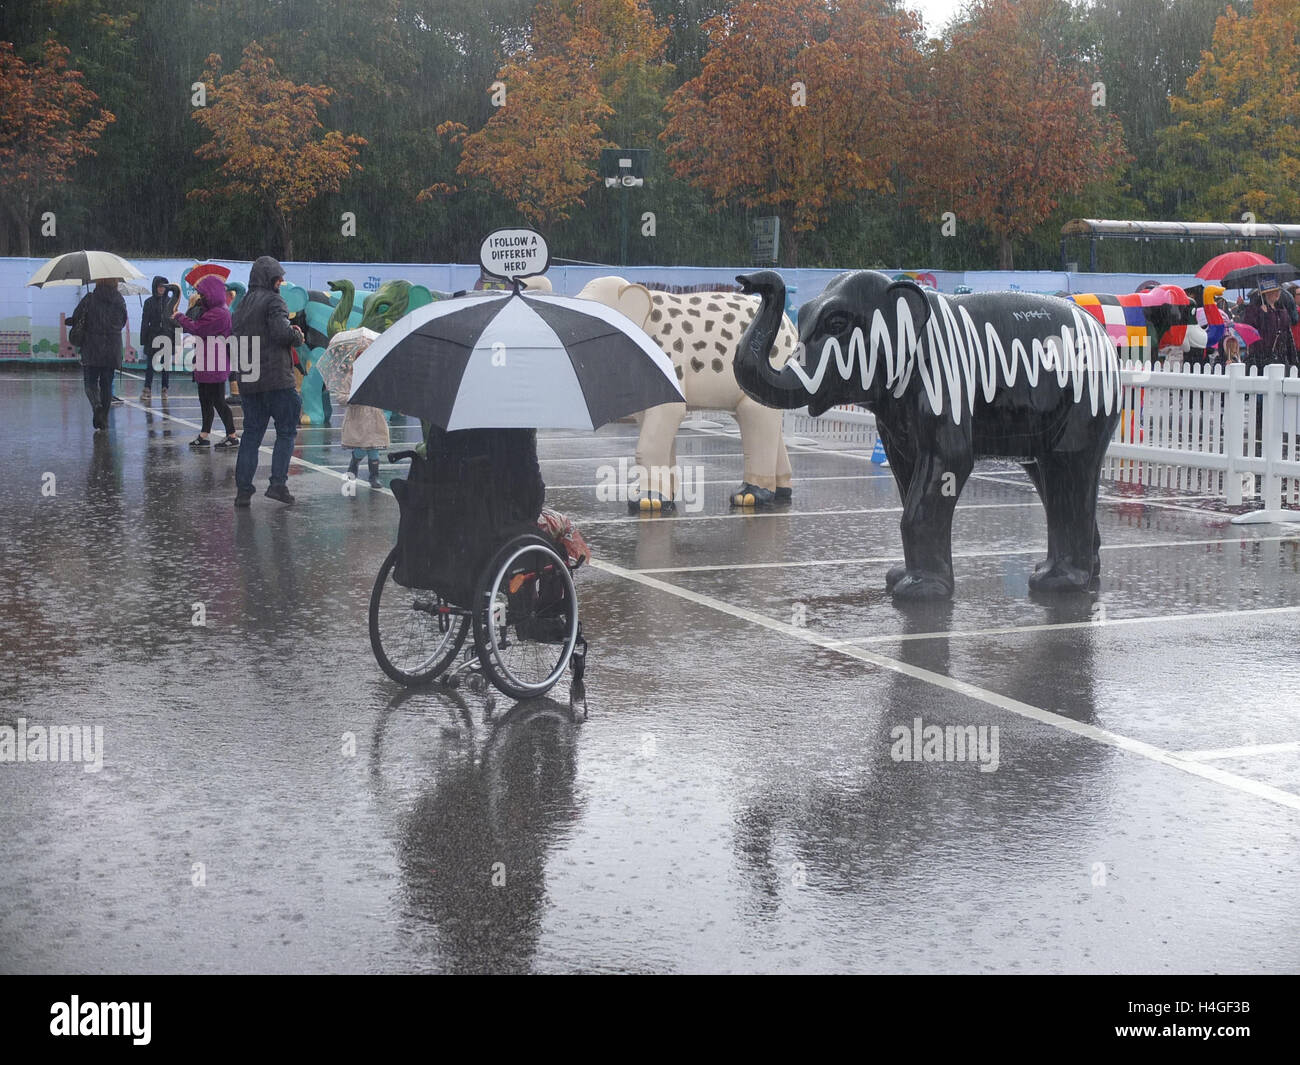 Meadowhall, Sheffield, UK. 16th October 2016. UK Weather: Despite heavy rain, a crowd of people attends the Herd Stock Photo